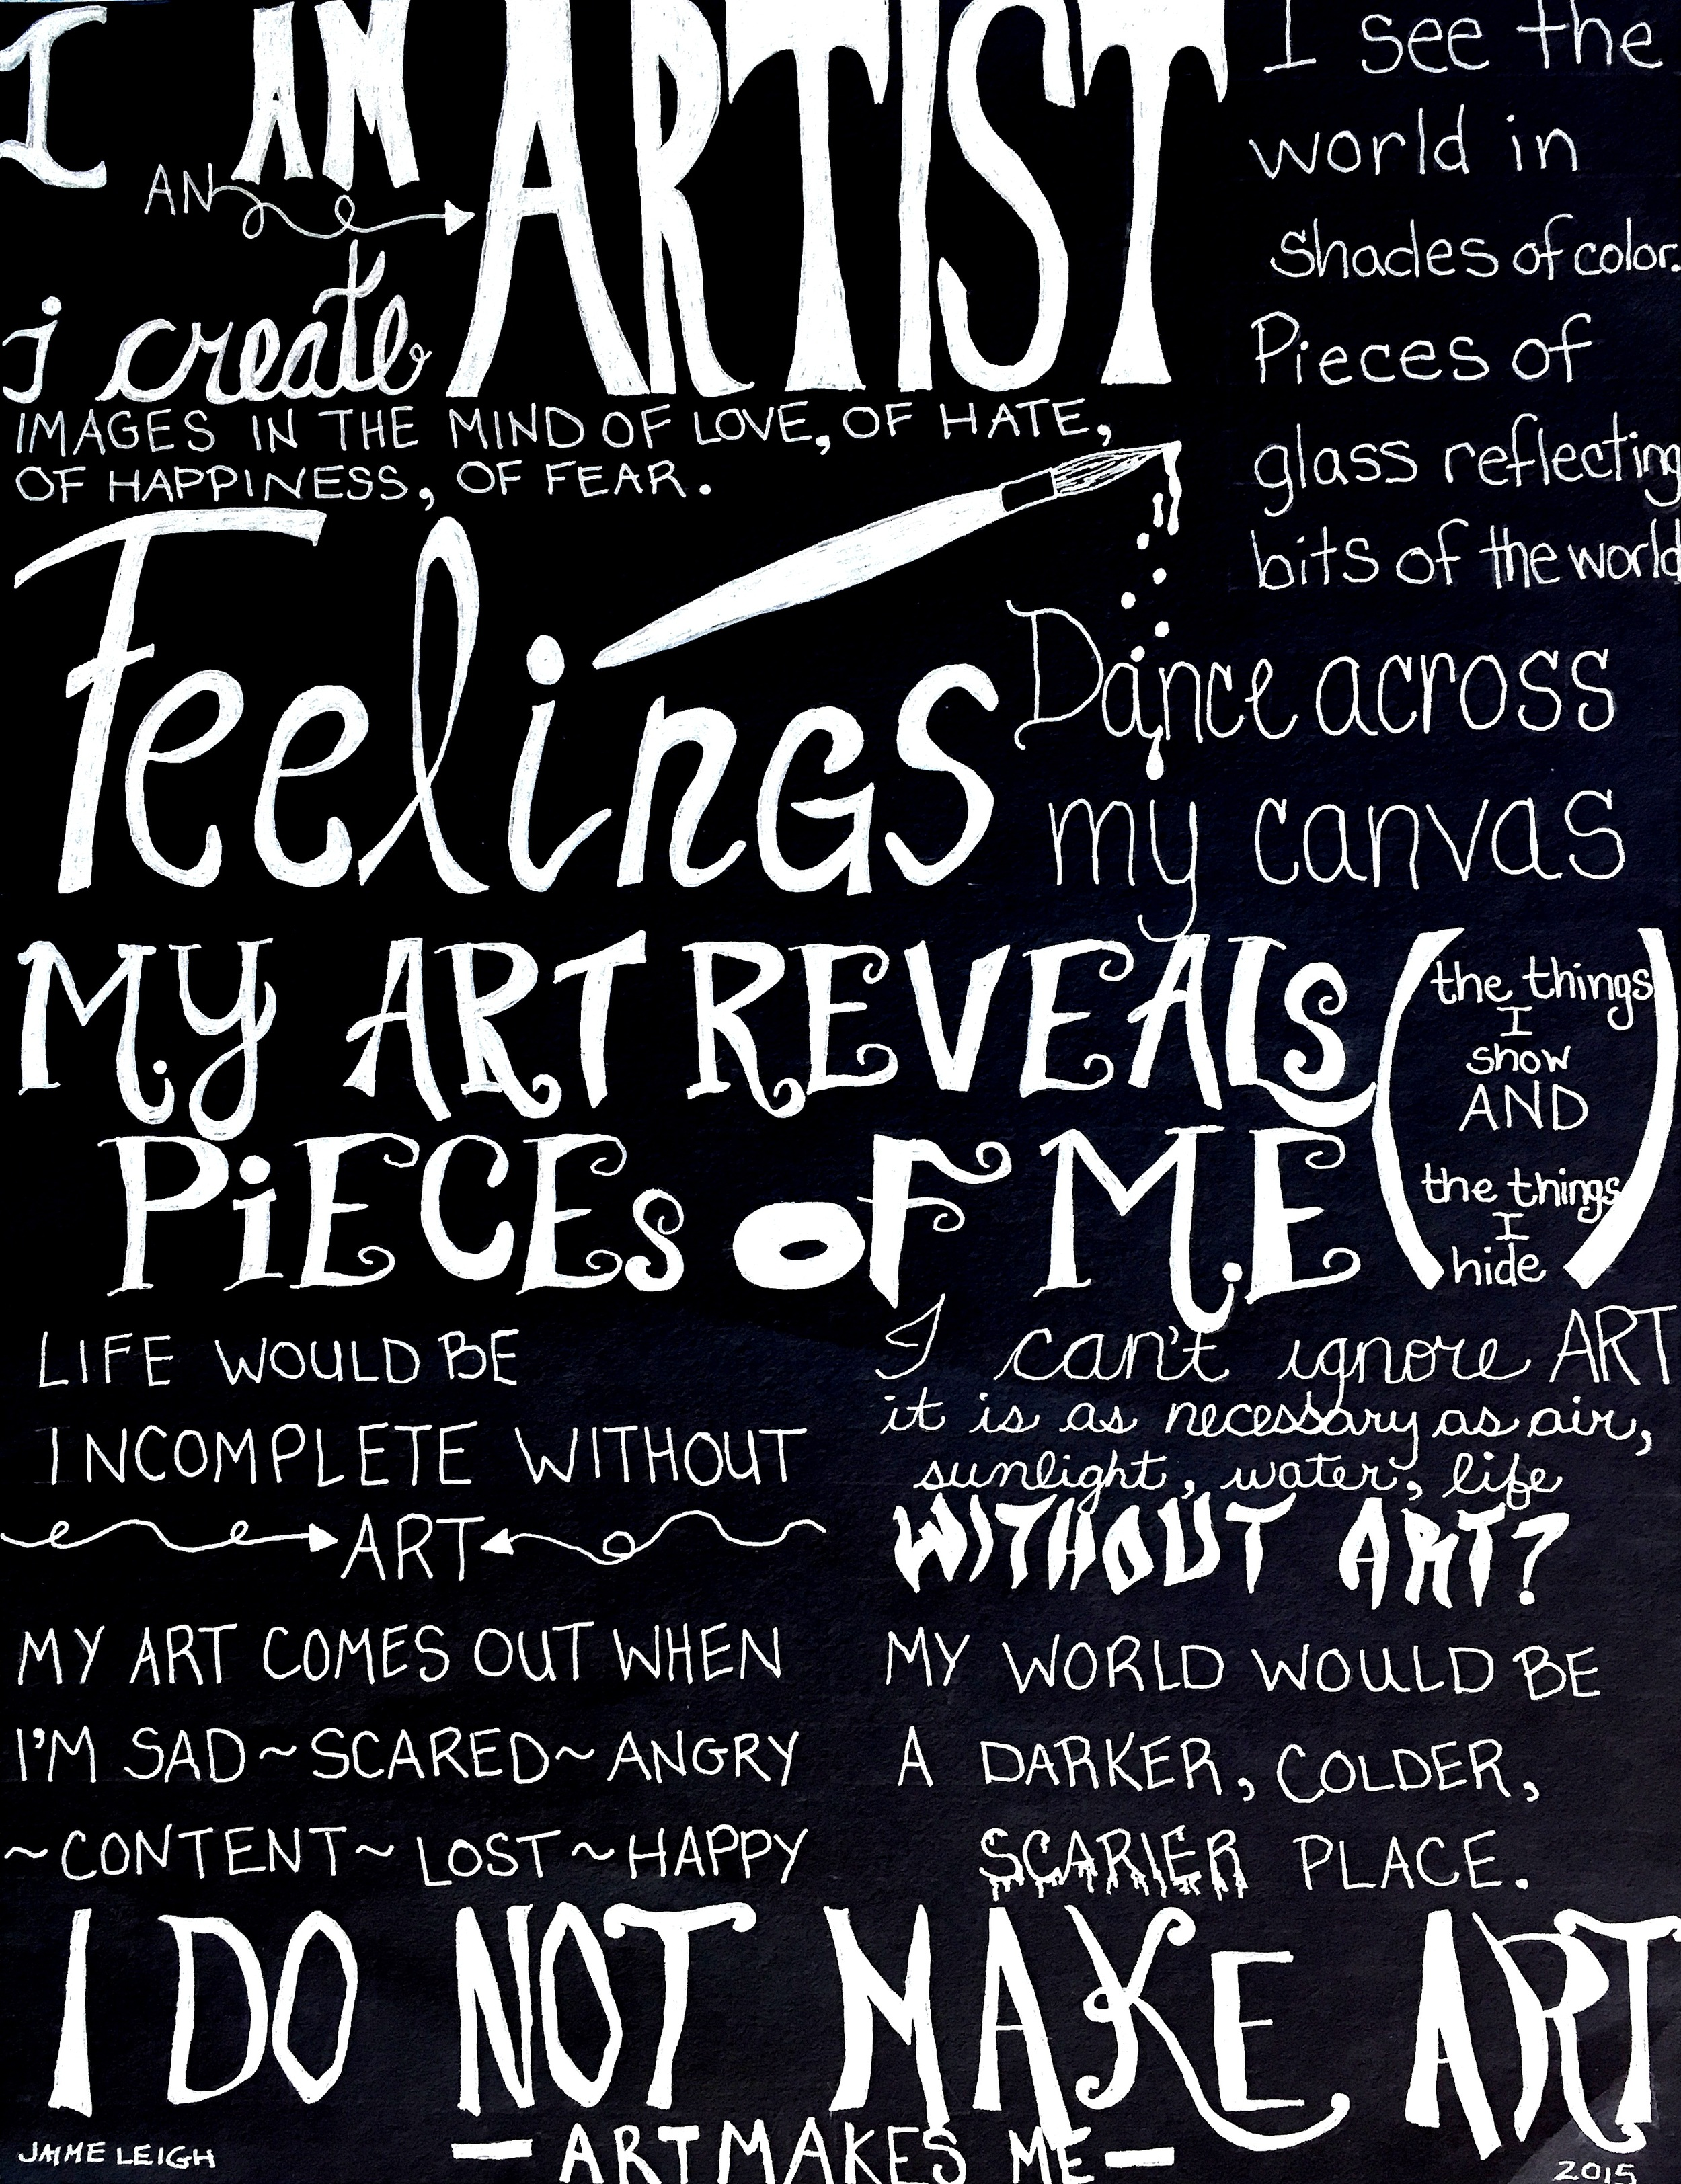 Jaime Leigh: Hand Lettered artist's statement!